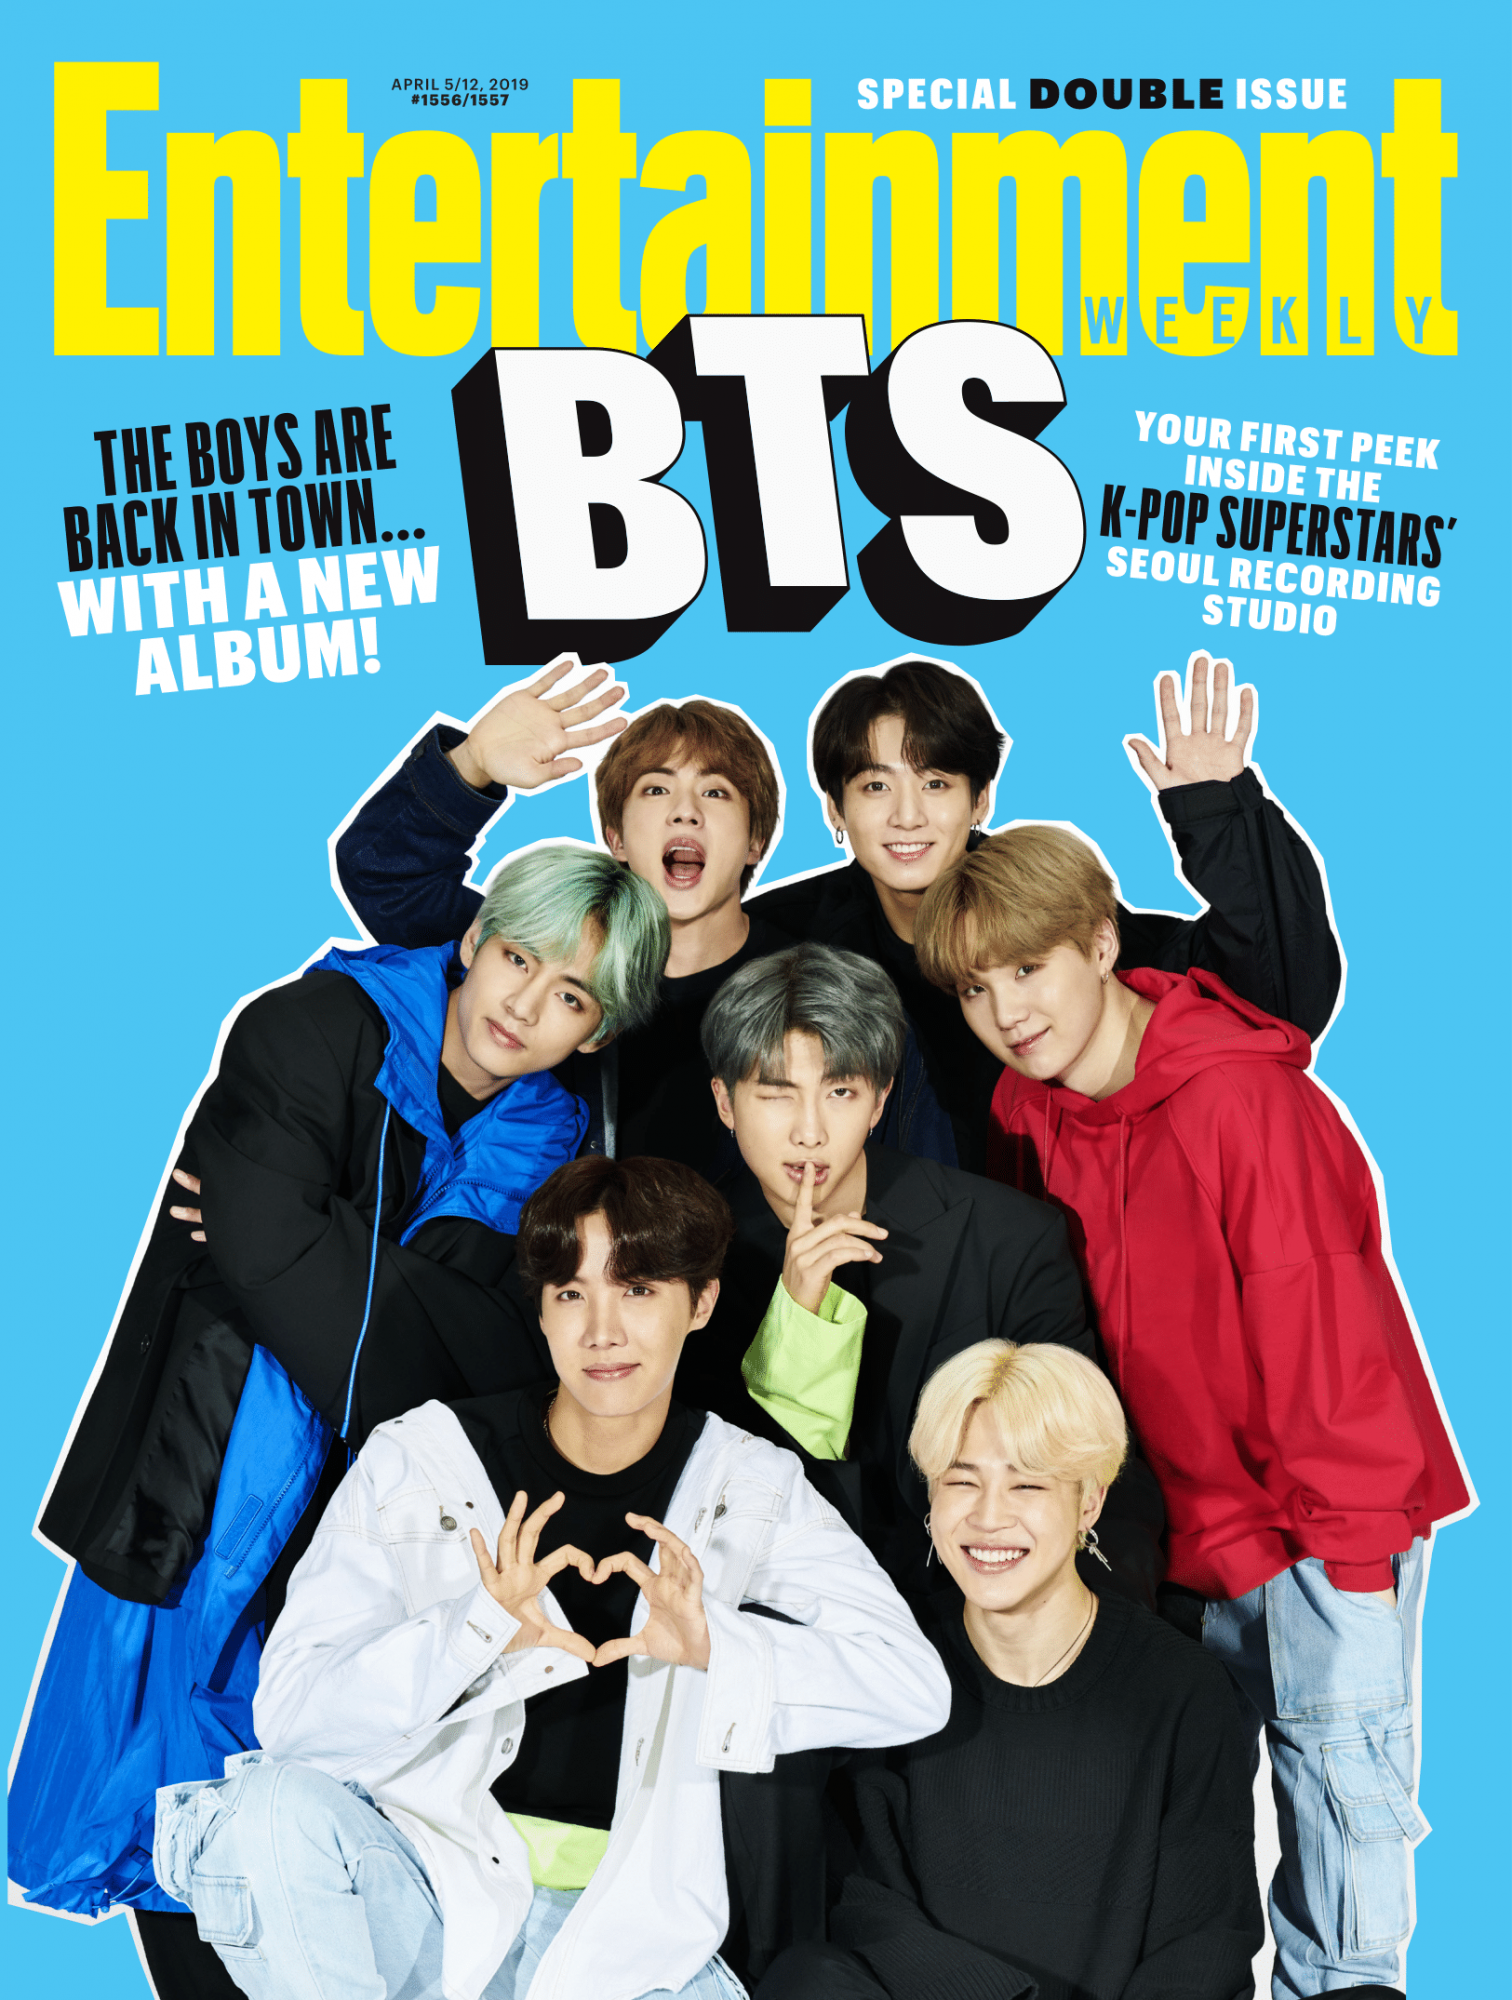 040519.COVER.BTS-POSTER-1